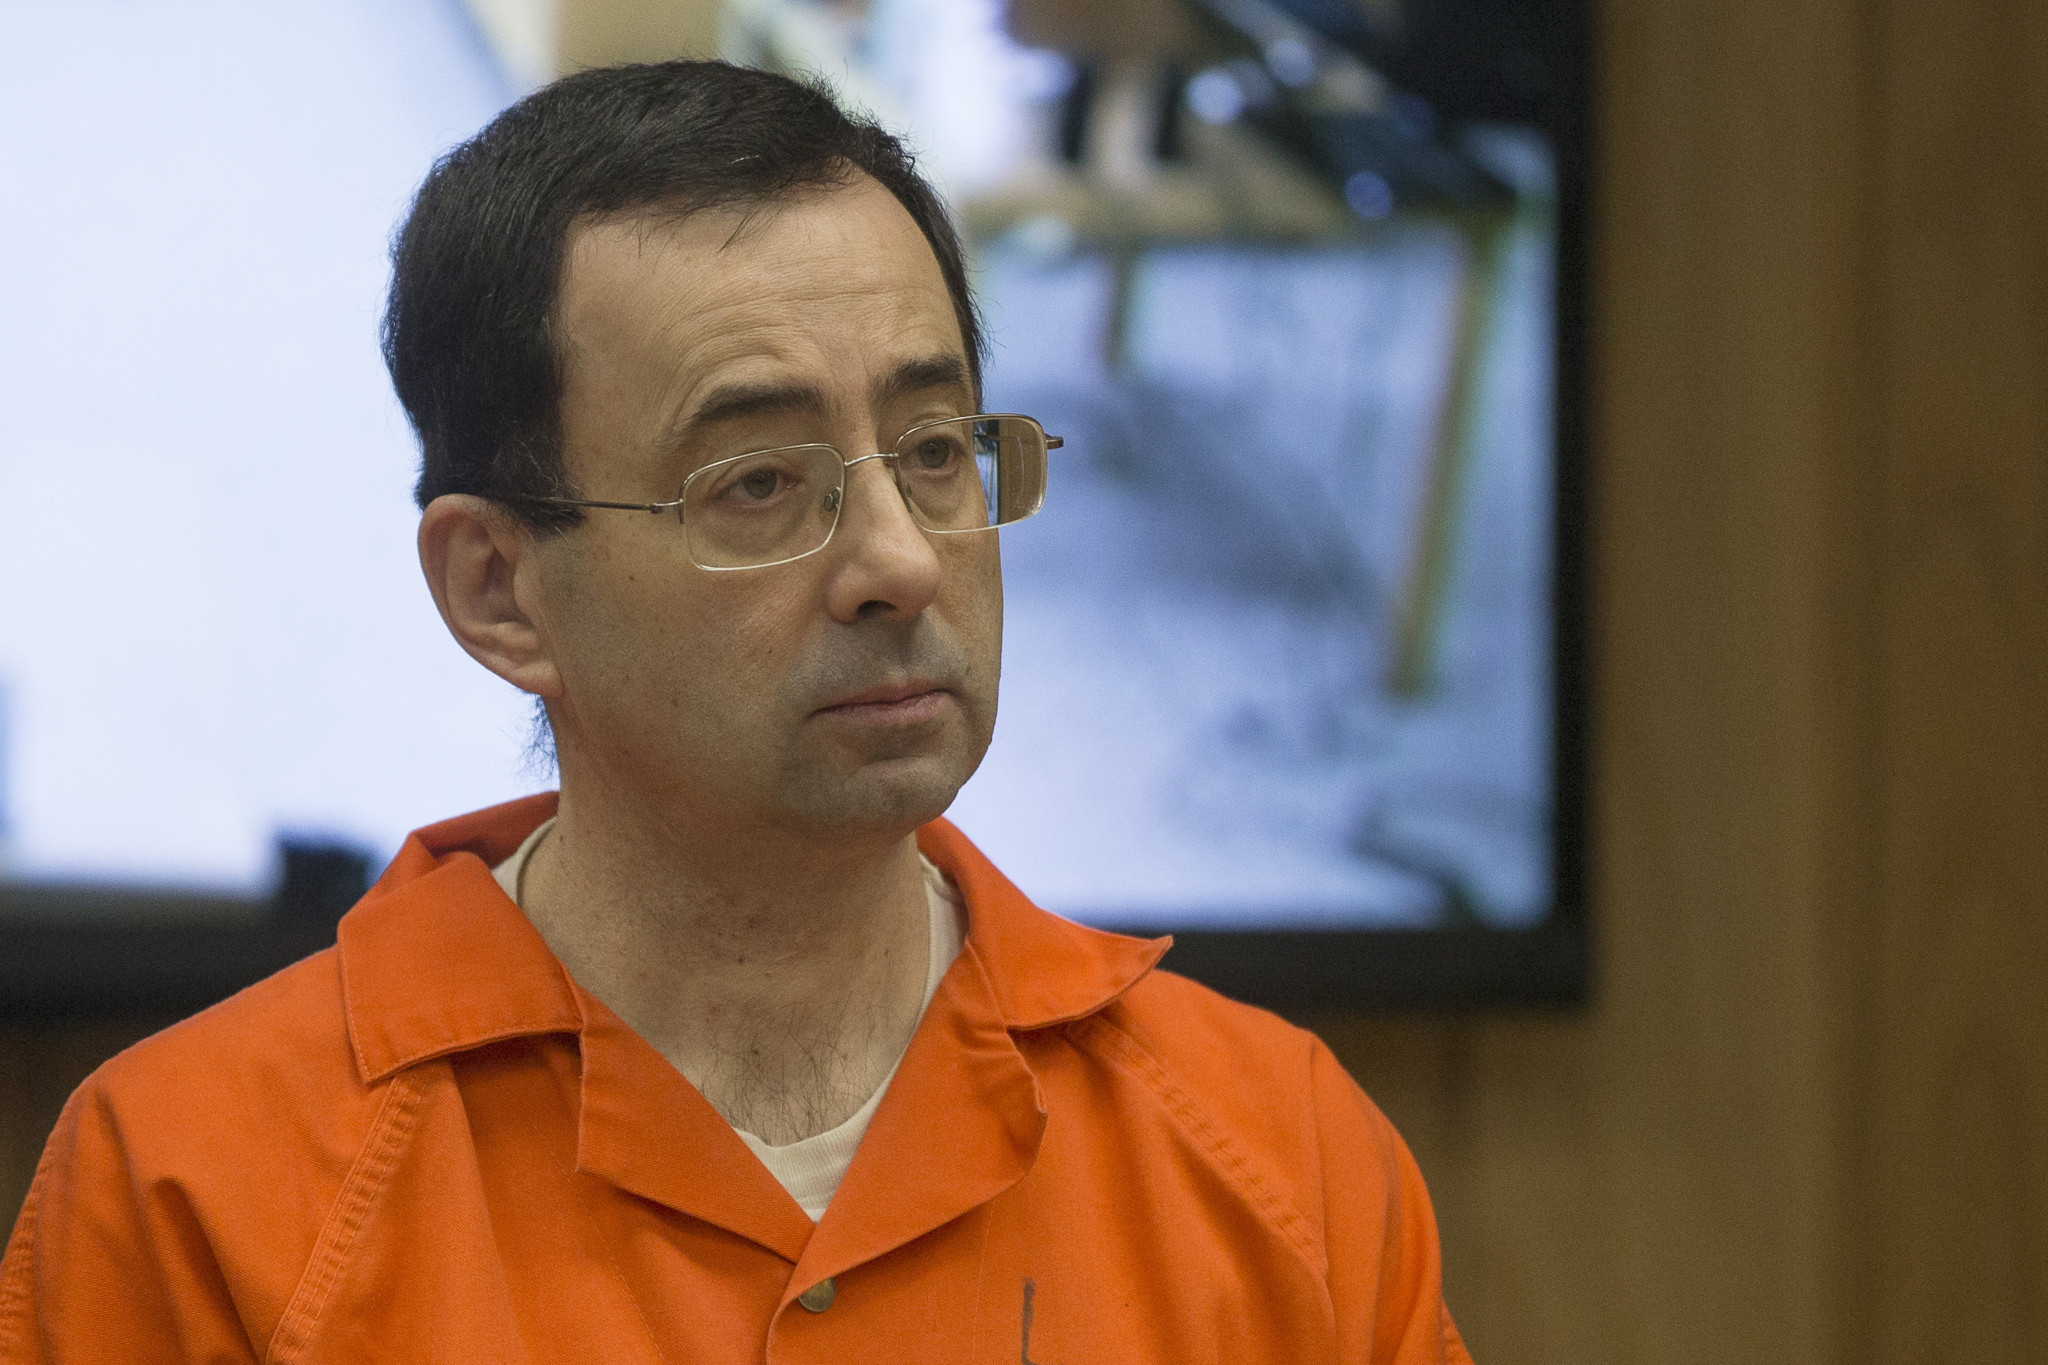 Former USA Gymnastics doctor Larry Nassar was recently sentenced to up to 175 years in prison for sexual abuse offences involving hundreds of girls under his care ©Getty Images